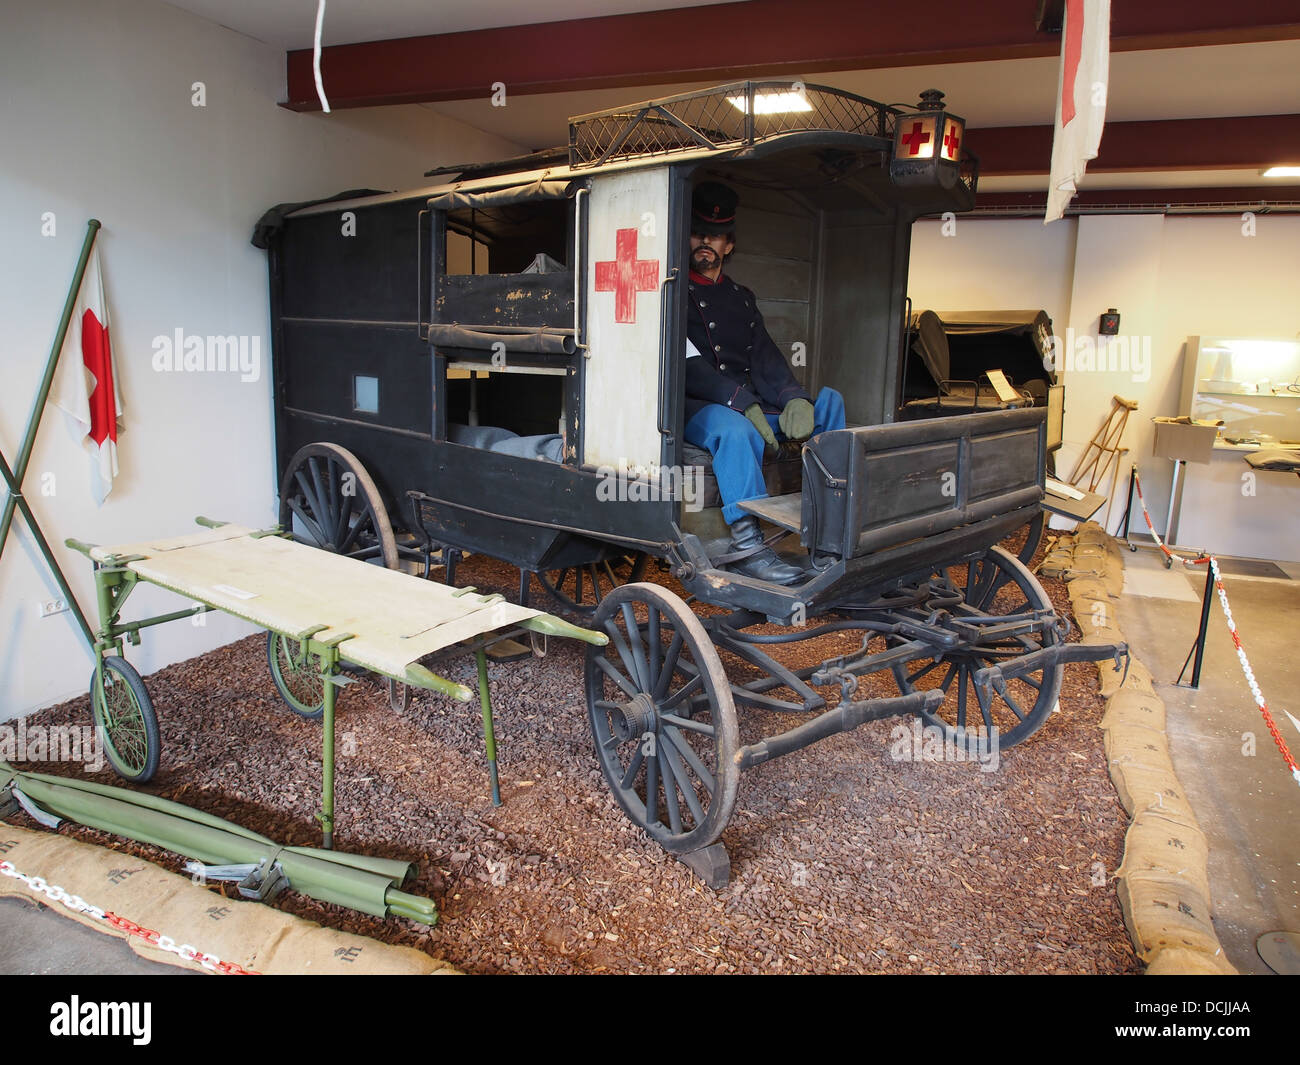 Ambulance carriage, photographed at the Aalborg Forsvars- og Garnisonsmuseum - Stock Image